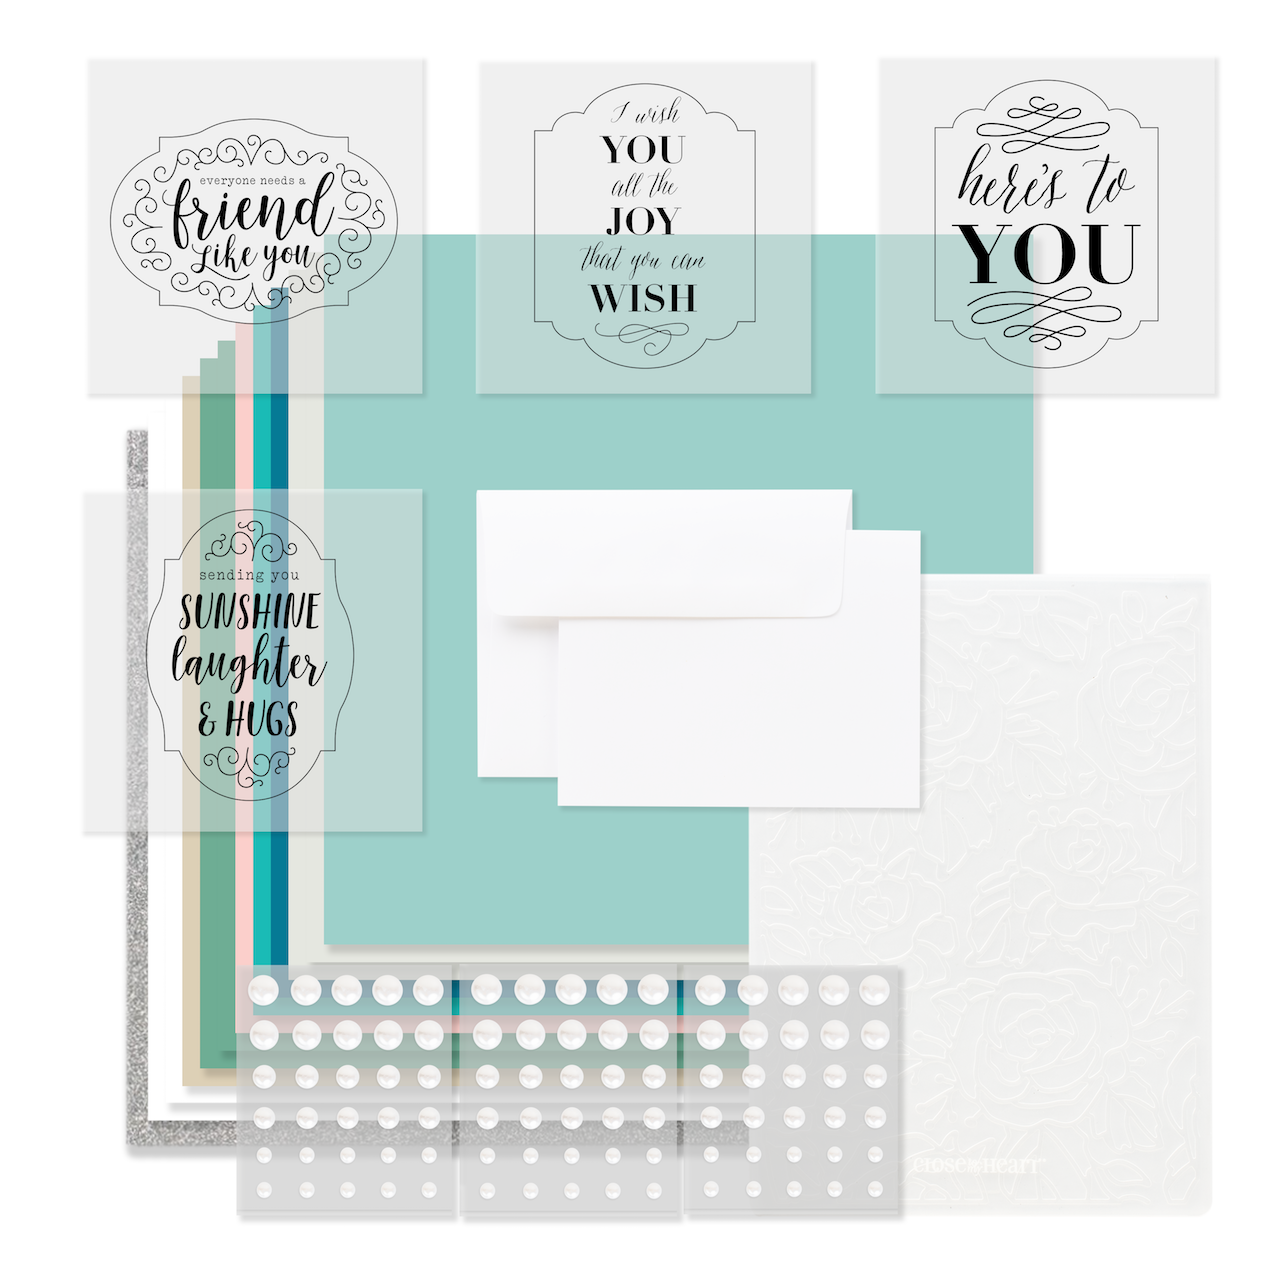 Cardmaking Scrapbooking With Heres To You Make It From Your Heart